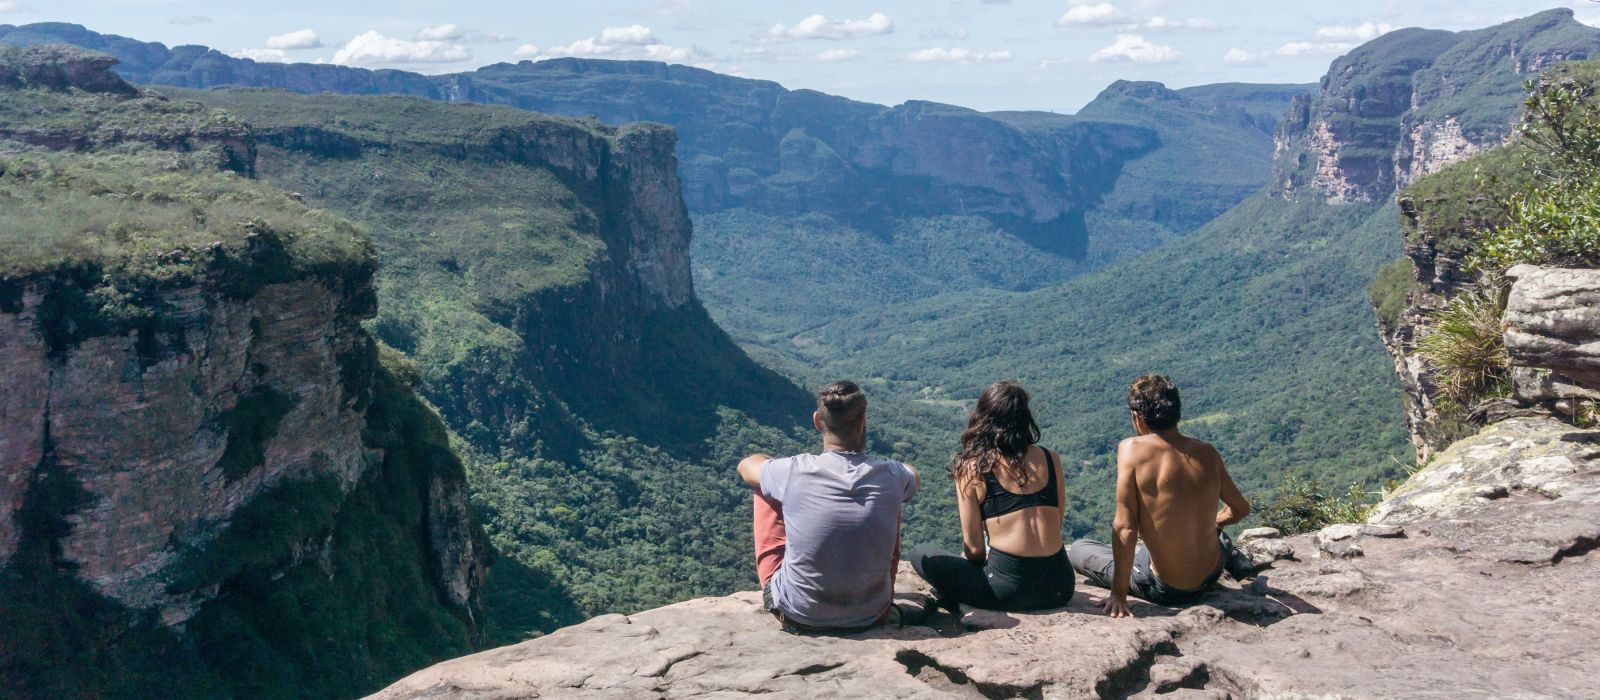 Group of hikers in Vale do Pati (Paty Valley), Chapada Diamantina National Park, Bahia, Brazil, South America